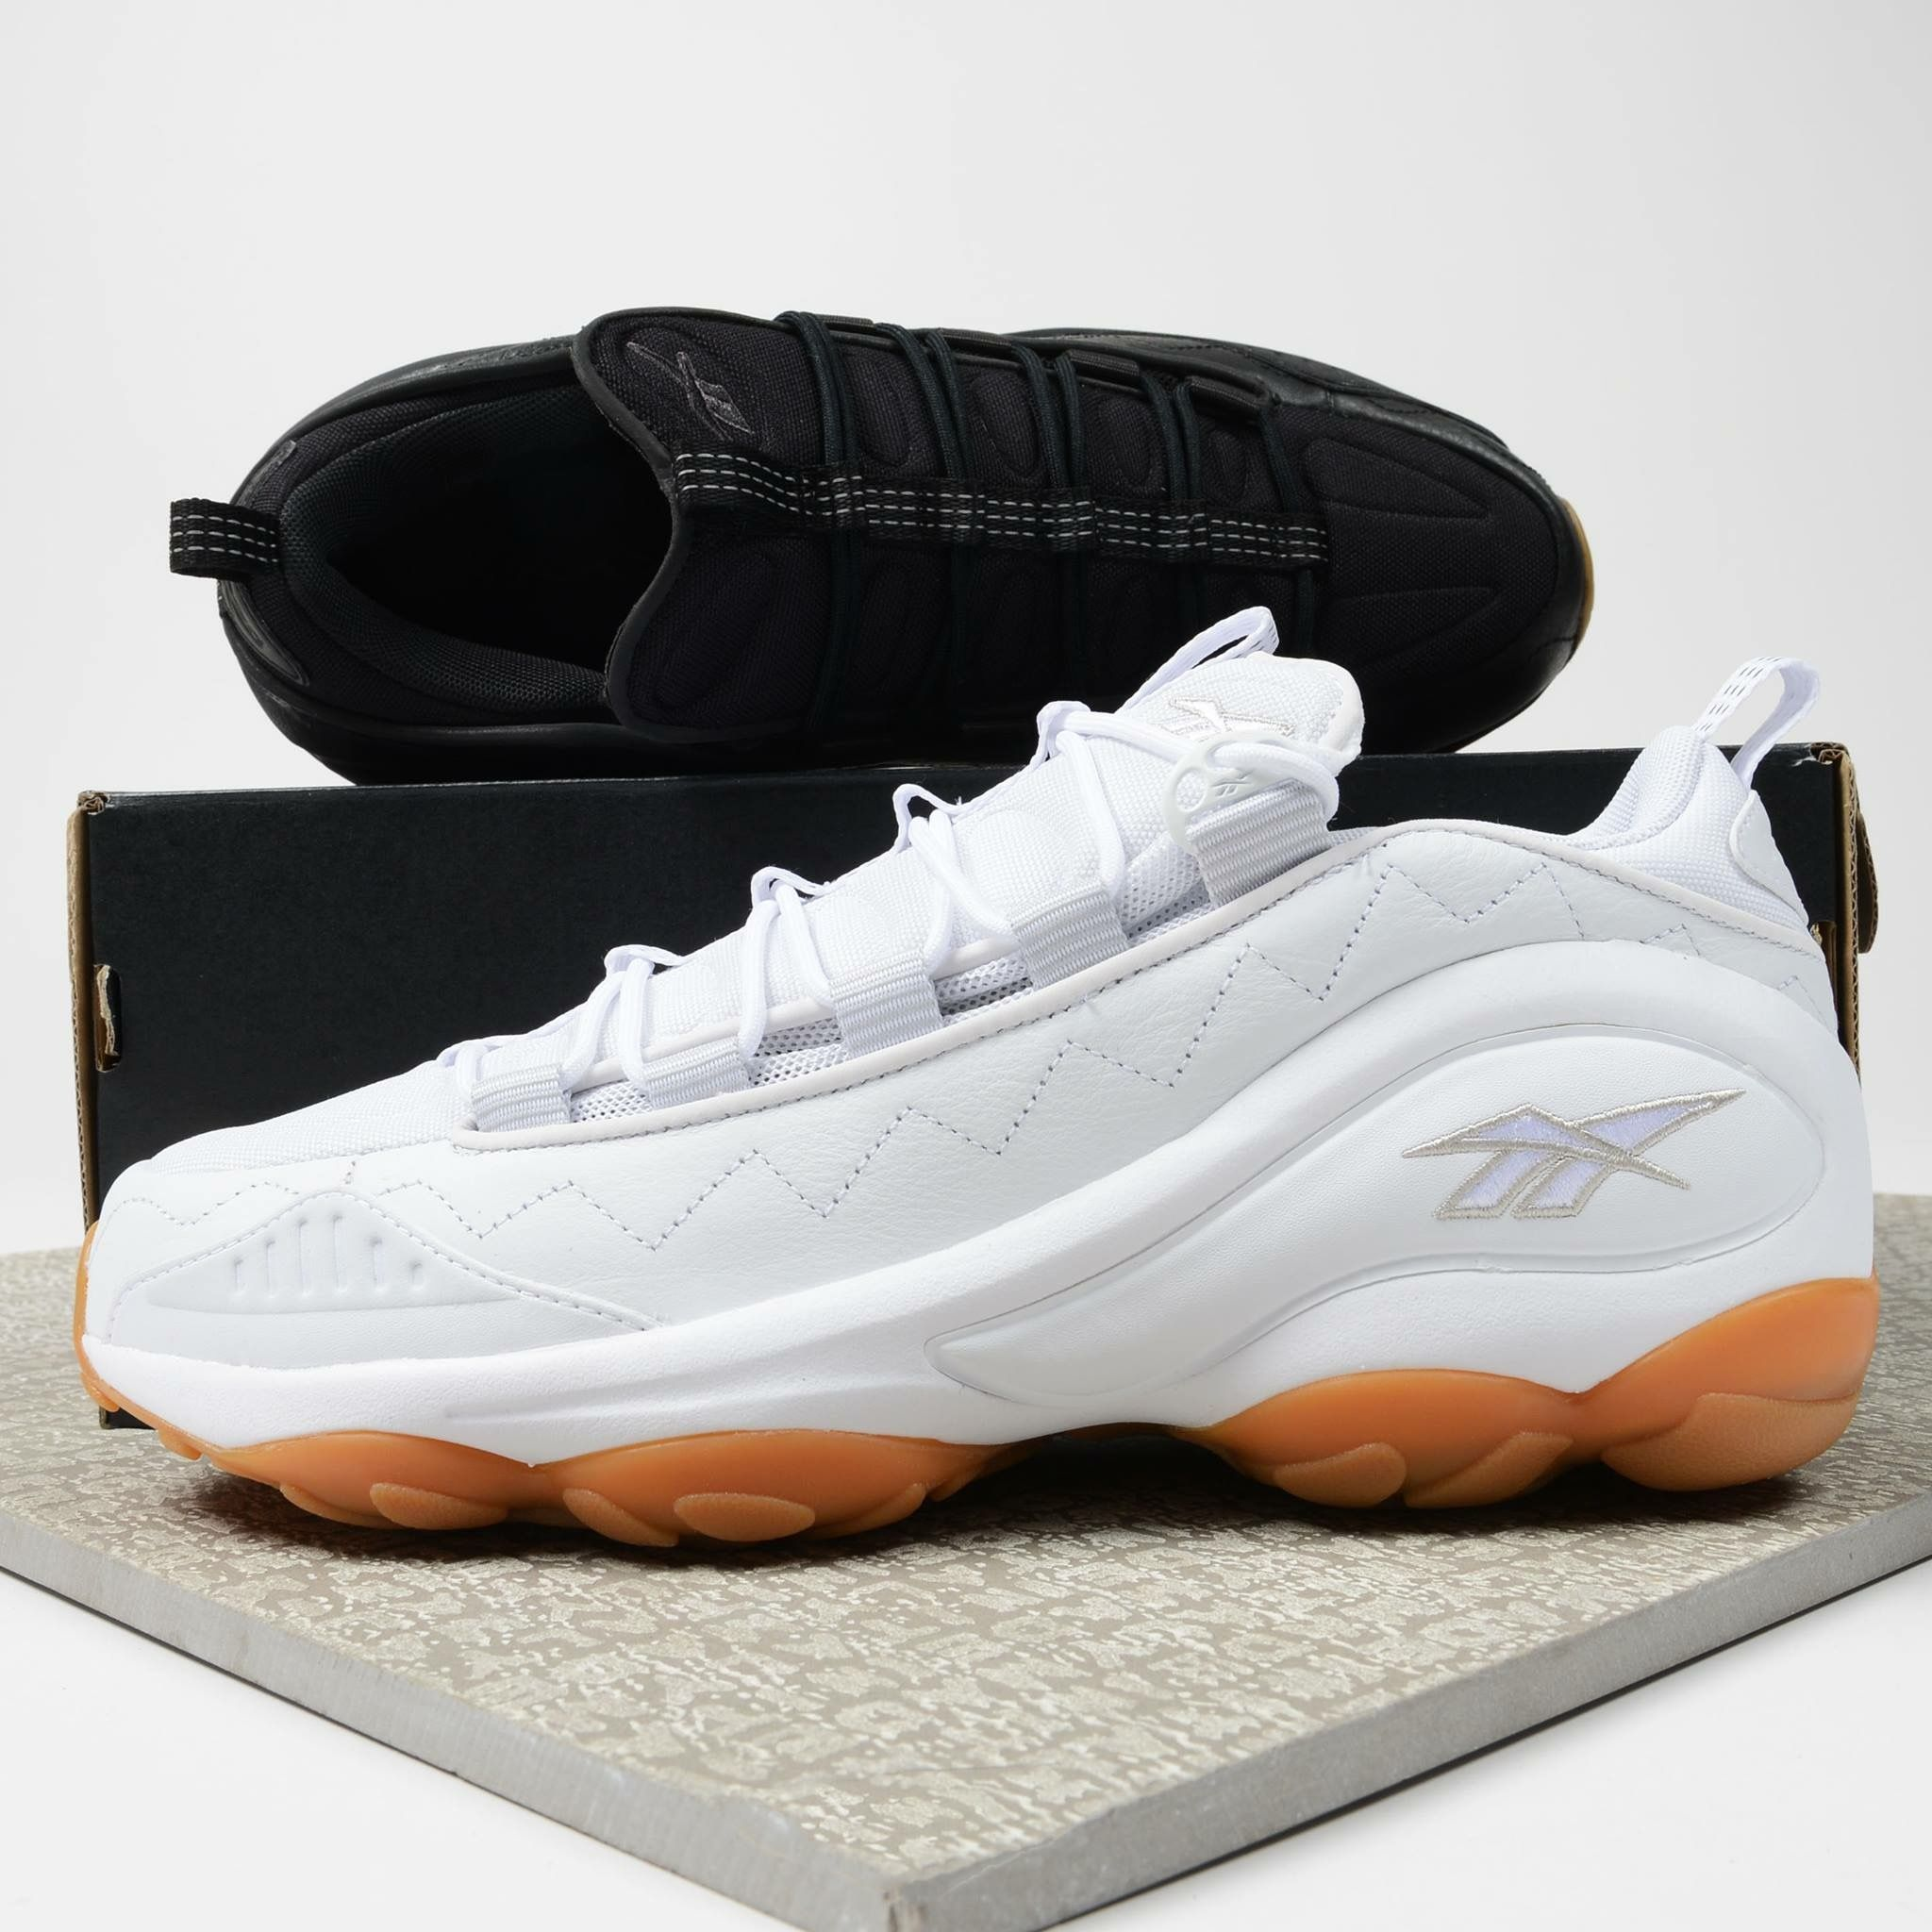 Reebok DMX Fusion | Best running shoes, Sneakers, Sneakers nike